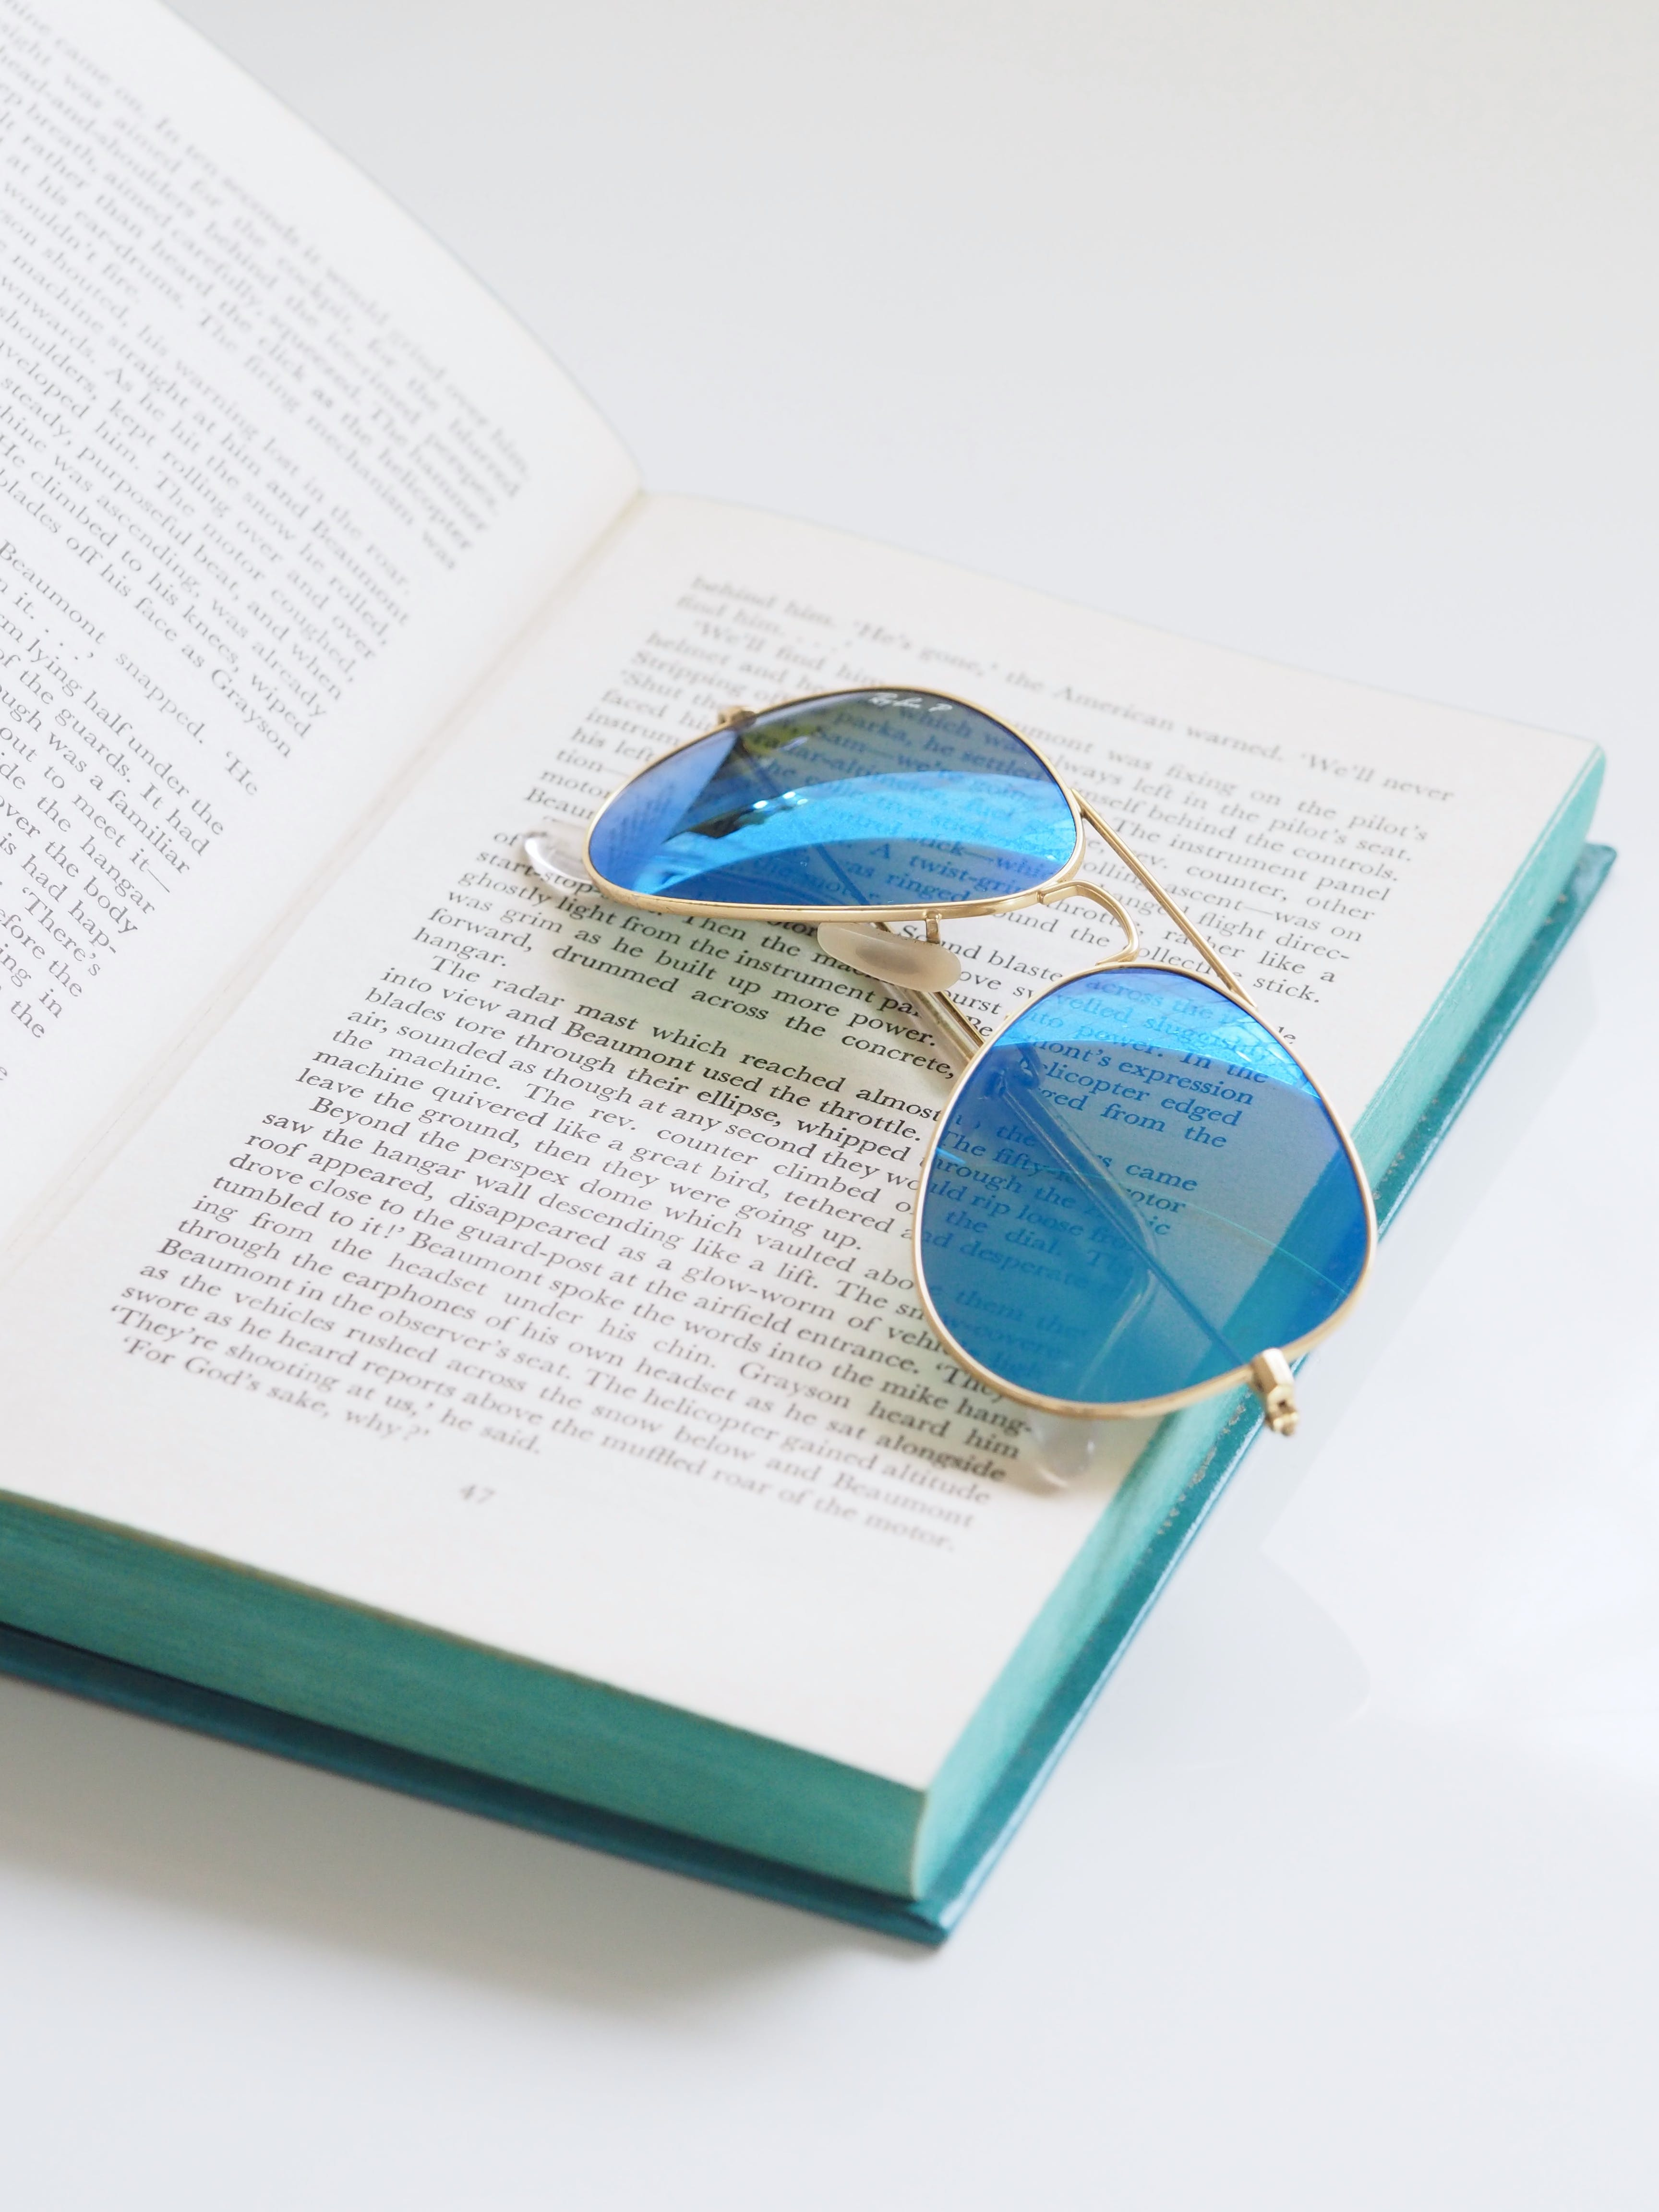 Close-up Photography of Sunglasses